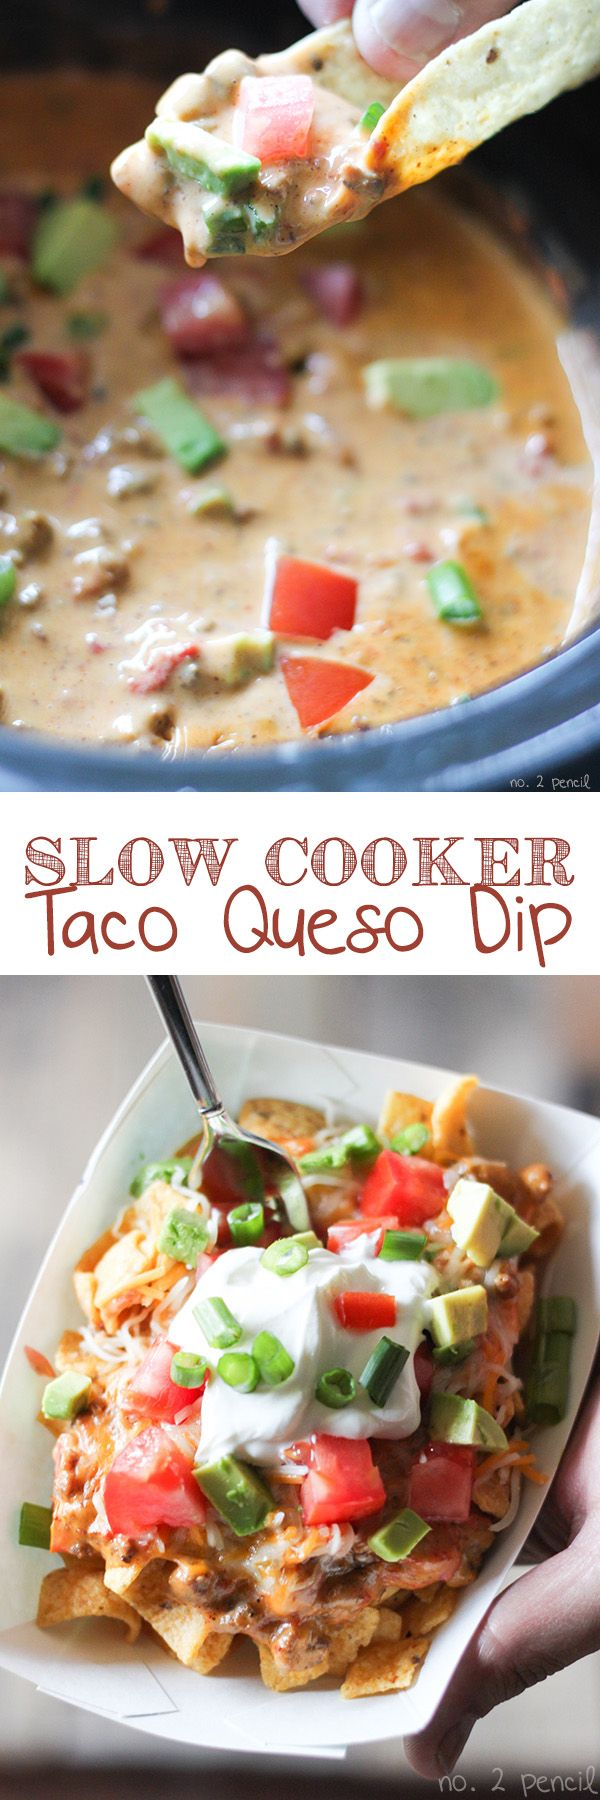 Slow Cooker Taco Queso Dip ~ so smooth and so delicious... Perfect for dunking tortilla chips, or make delicious Taco Queso Boats with corn chips, shredded cheese and taco toppings.